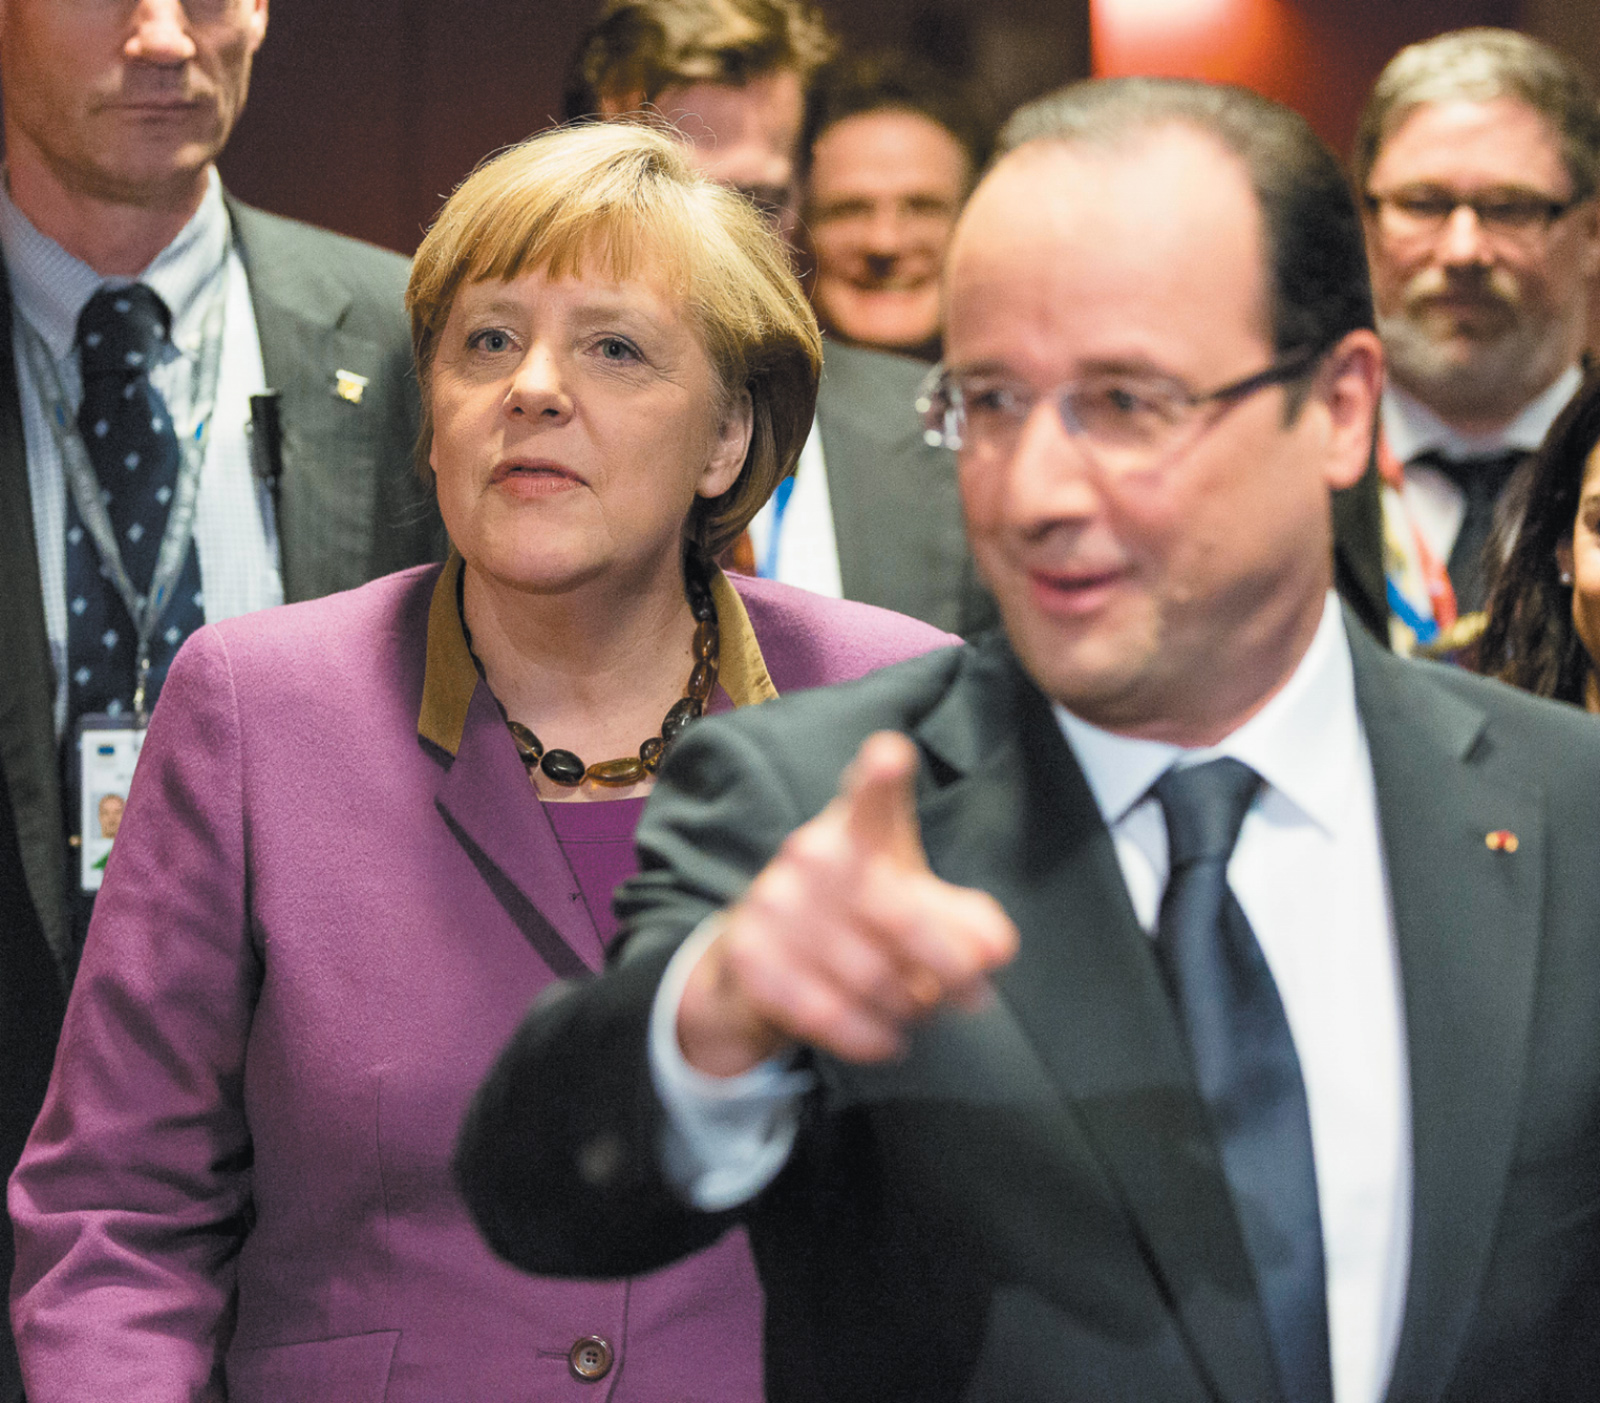 German Chancellor Angela Merkel and French President François Hollande at a summit of the European Union, Brussels, February 2013